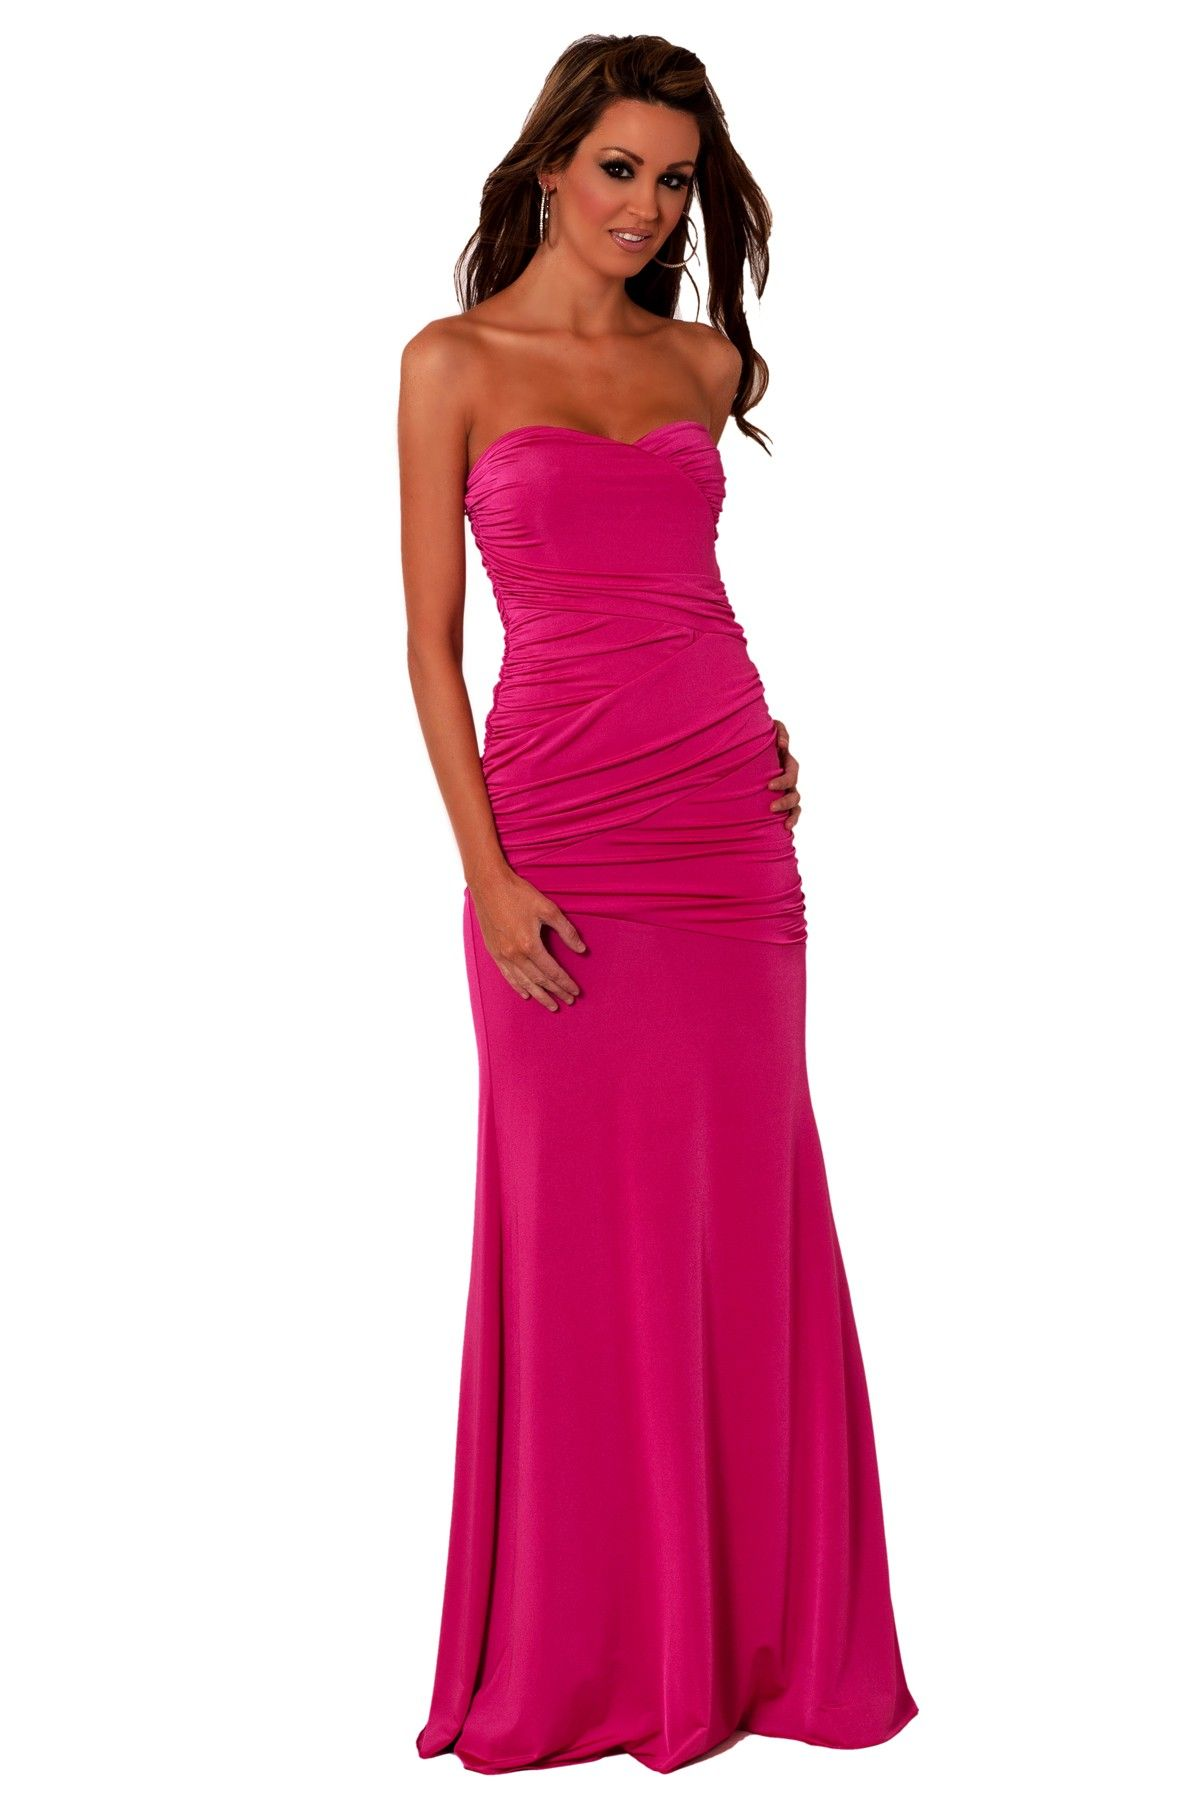 Hot pink maxi dress  Hot pink strapless maxi dress with ruching I love the shape of this